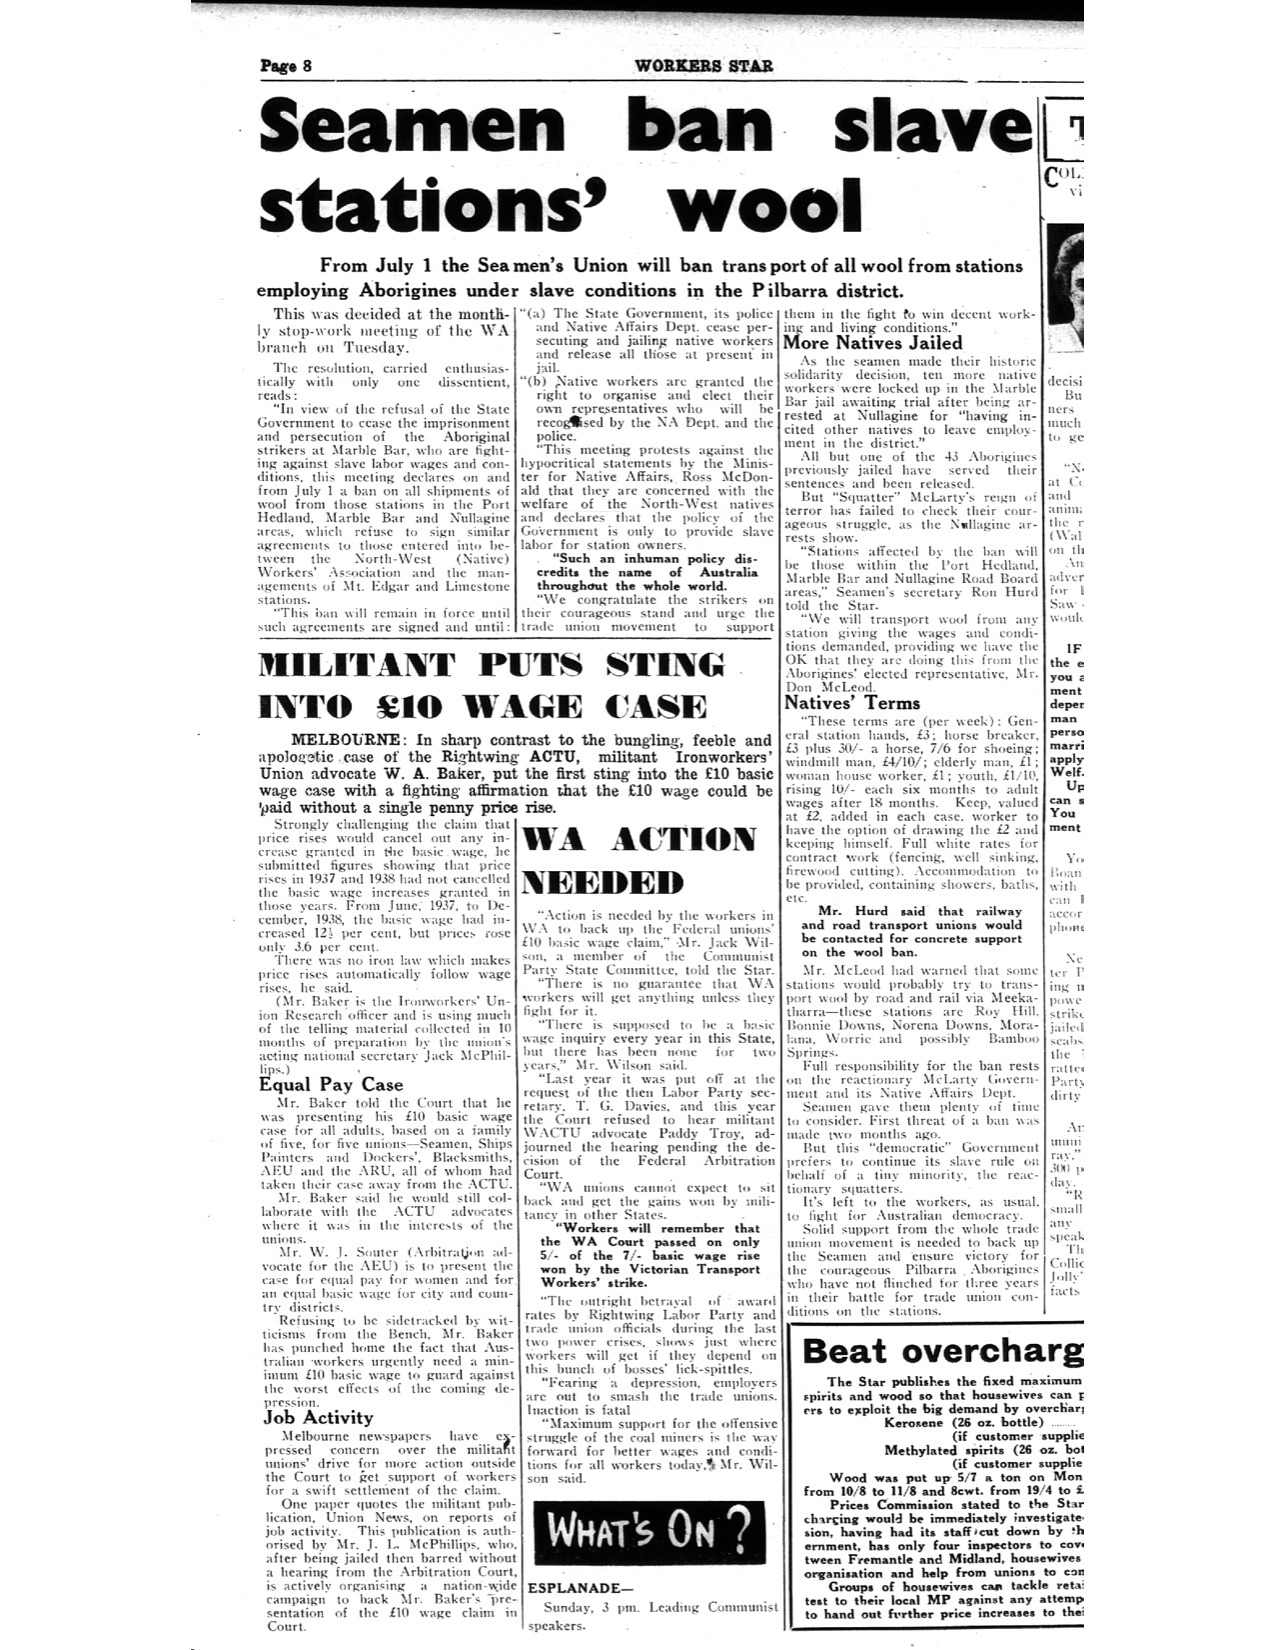 Seamen Ban Slave Stations' Wool newspaper article